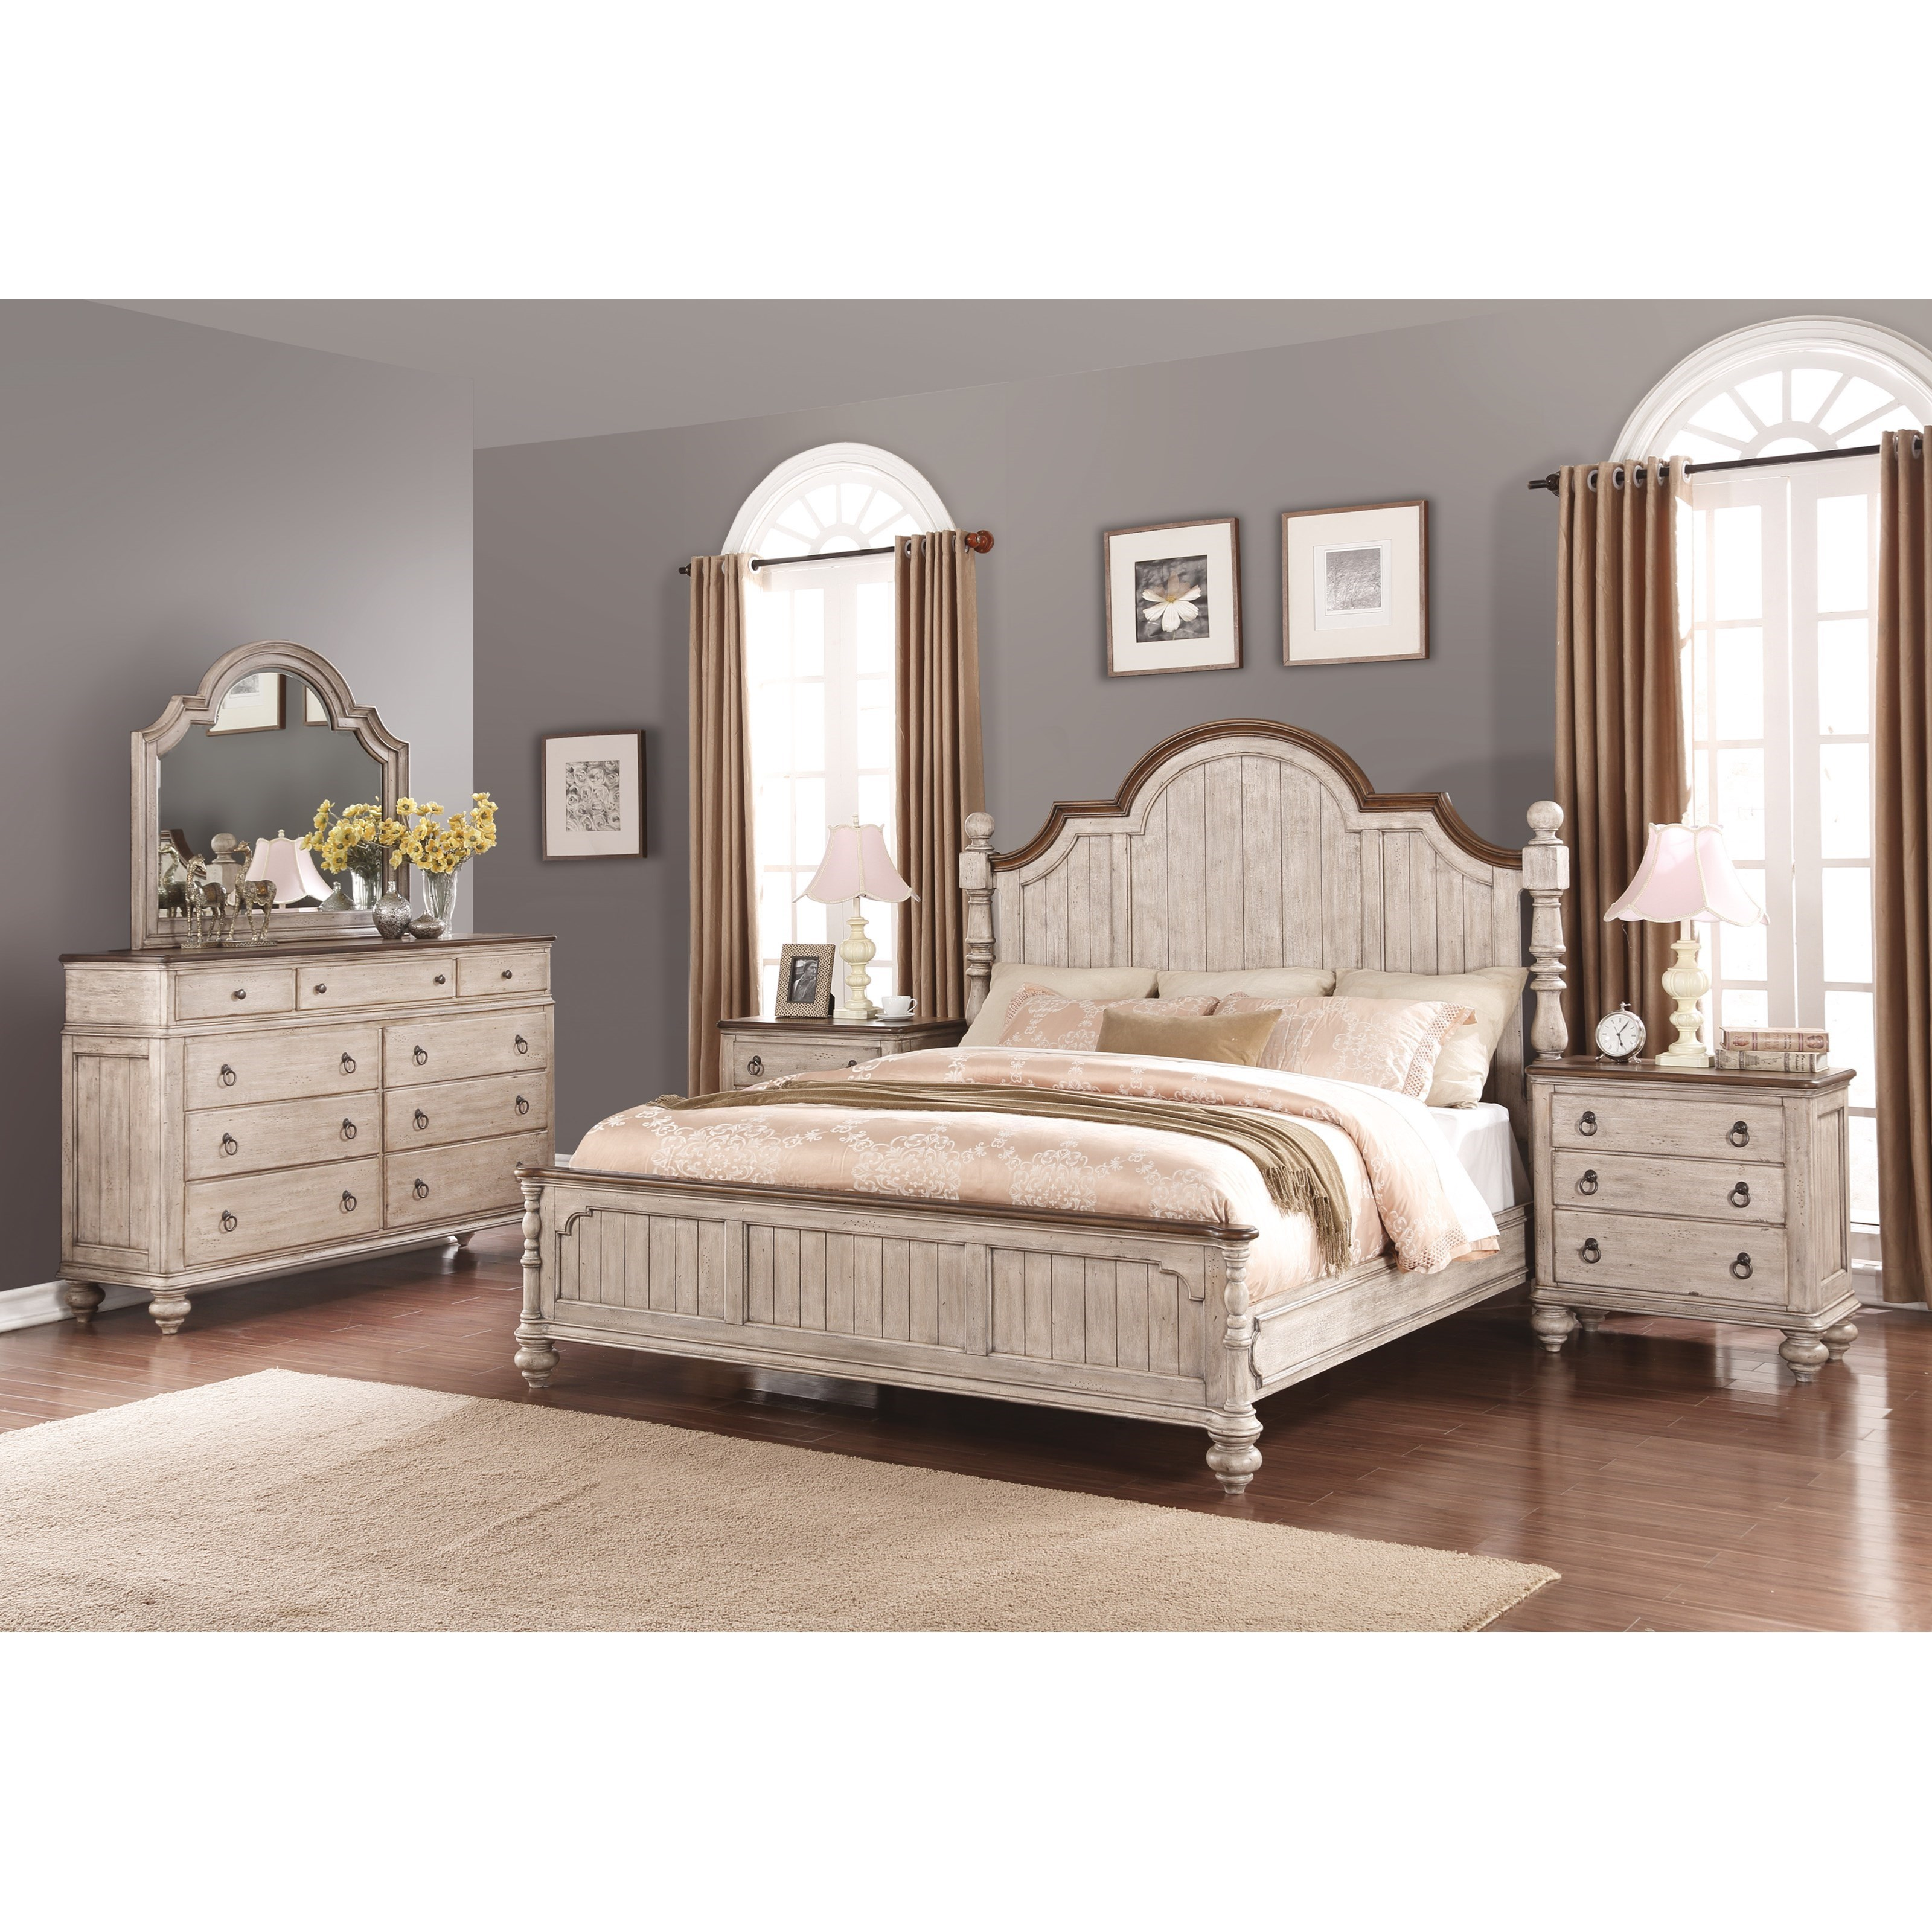 flexsteel wynwood collection plymouth king bedroom group olinde 39 s furniture bedroom groups